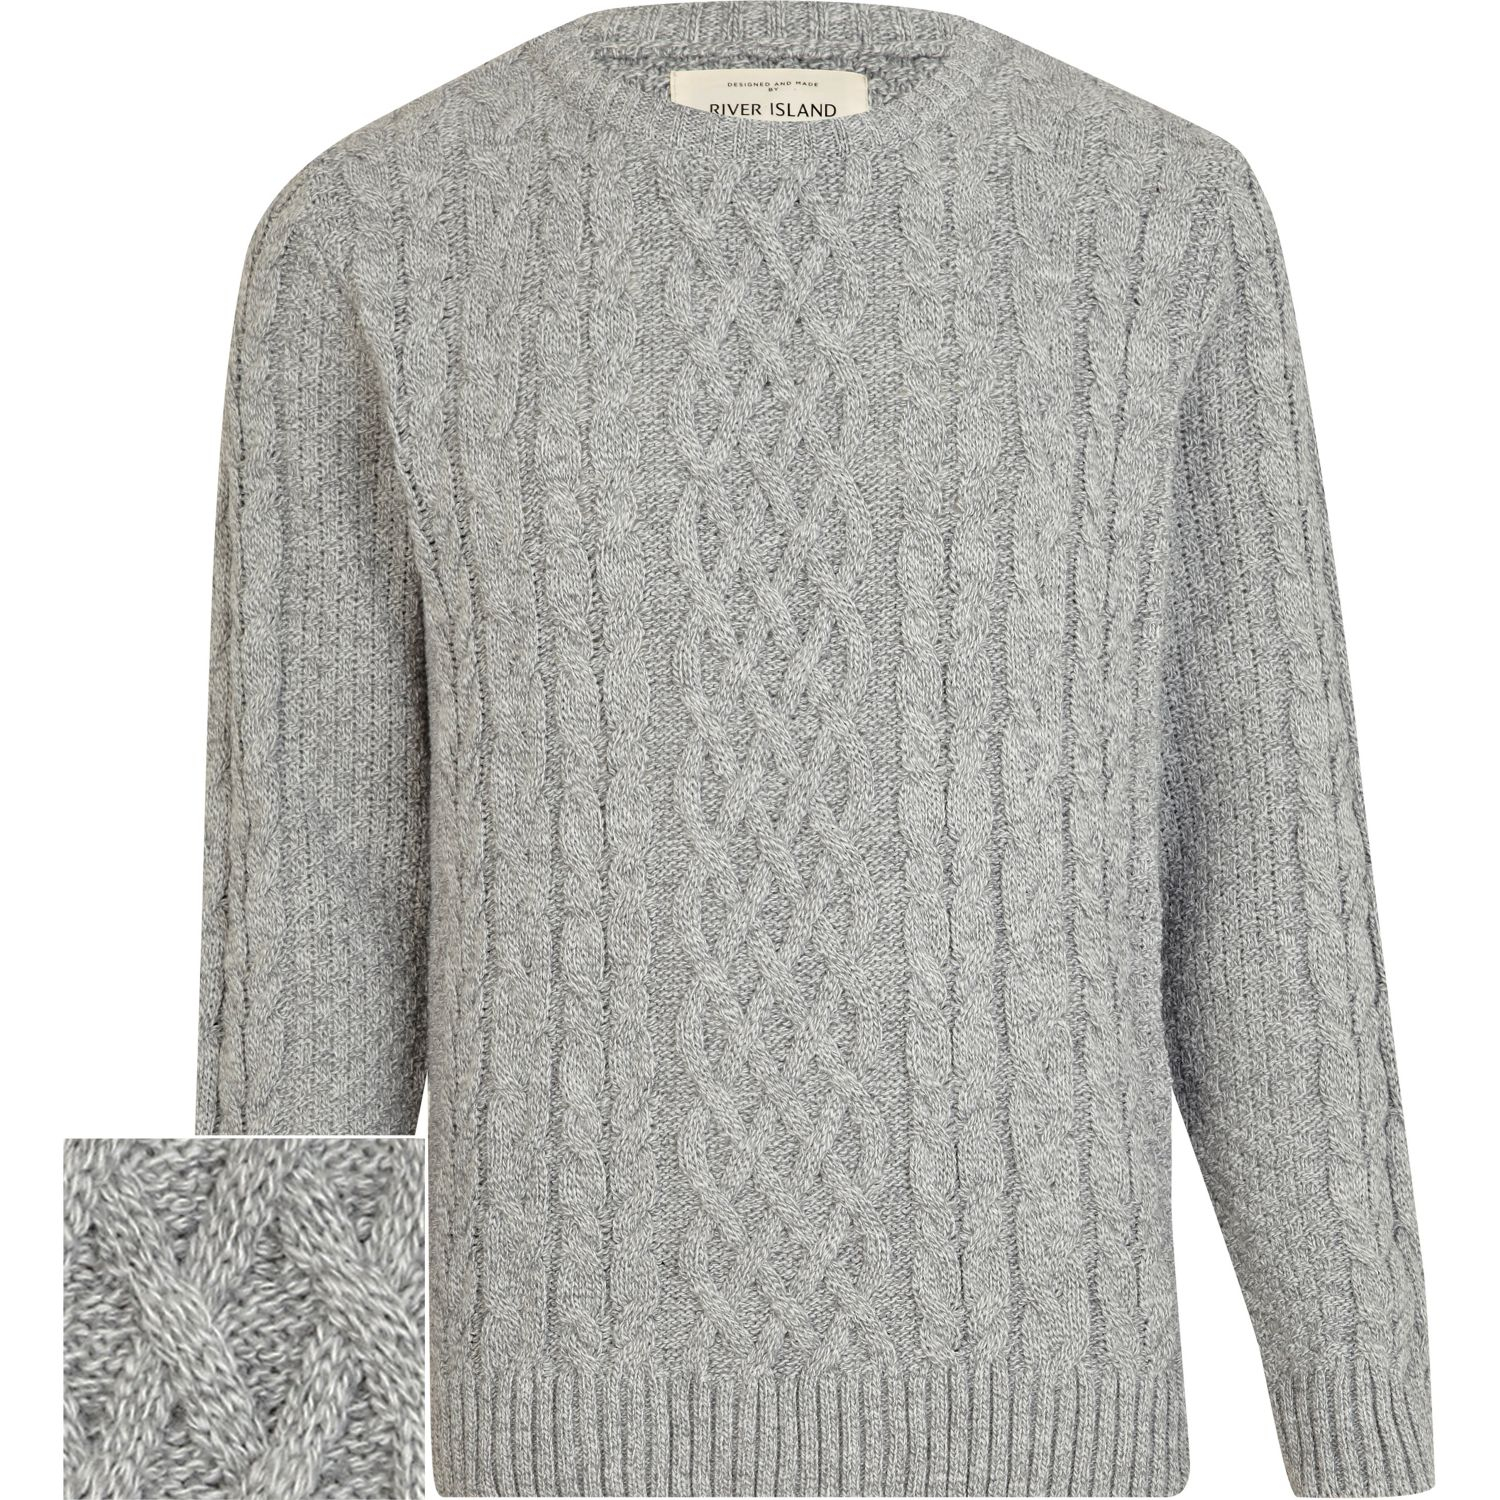 River island Light Grey Twist Chunky Cable Knit Sweater in Gray ...